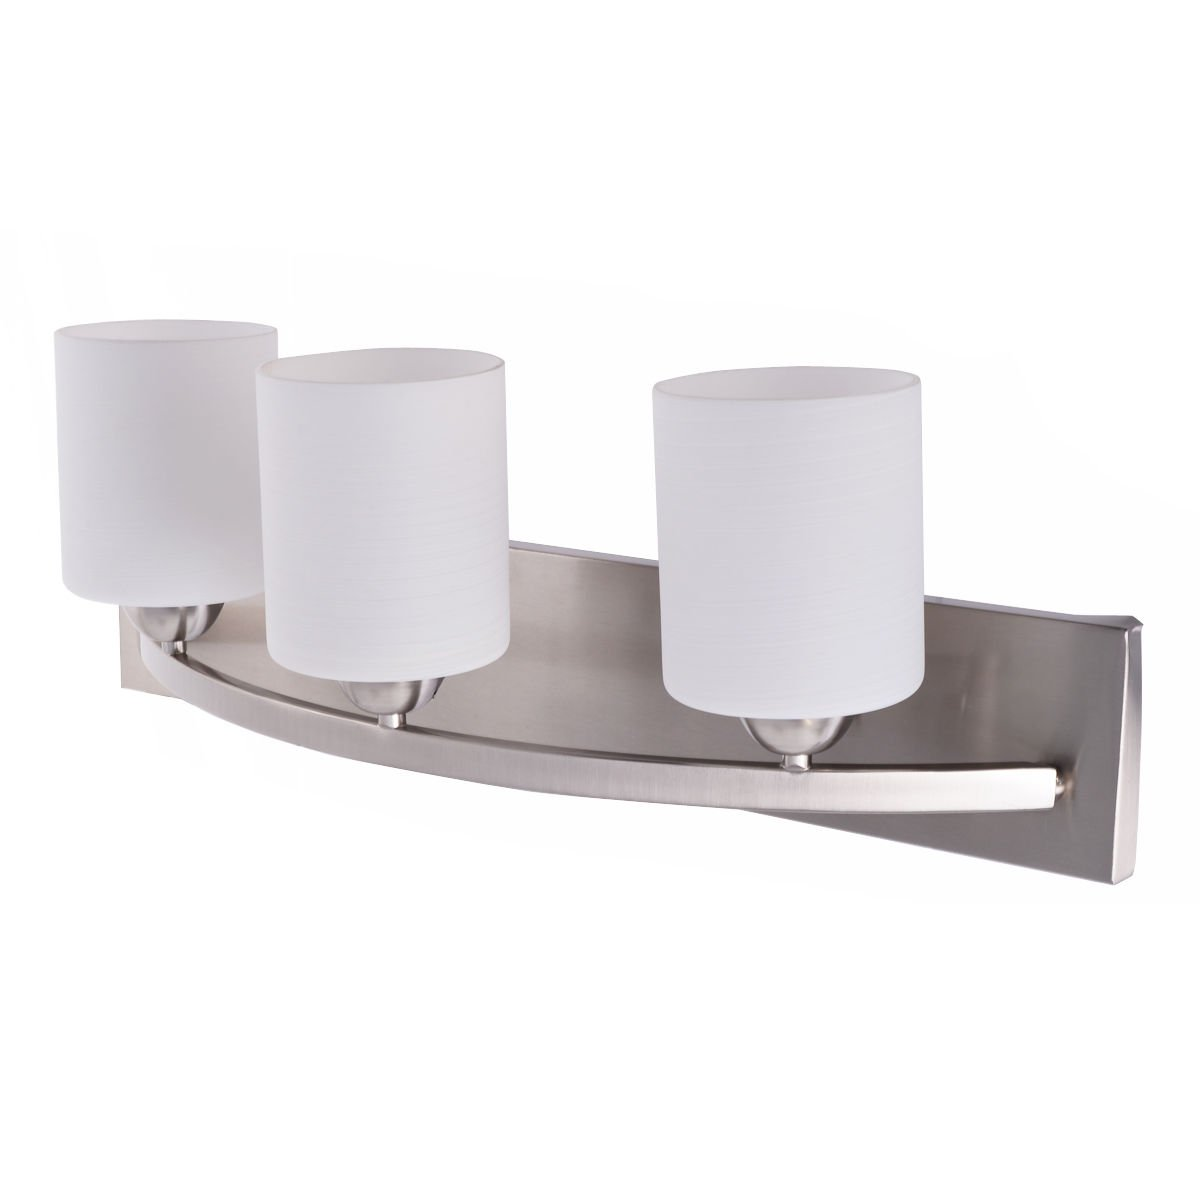 Tangkula Bathroom Vanity Lamp Shade Lamp Cover For Glass Wall Sconce  Pendant Lamp (3 Lights)     Amazon.com